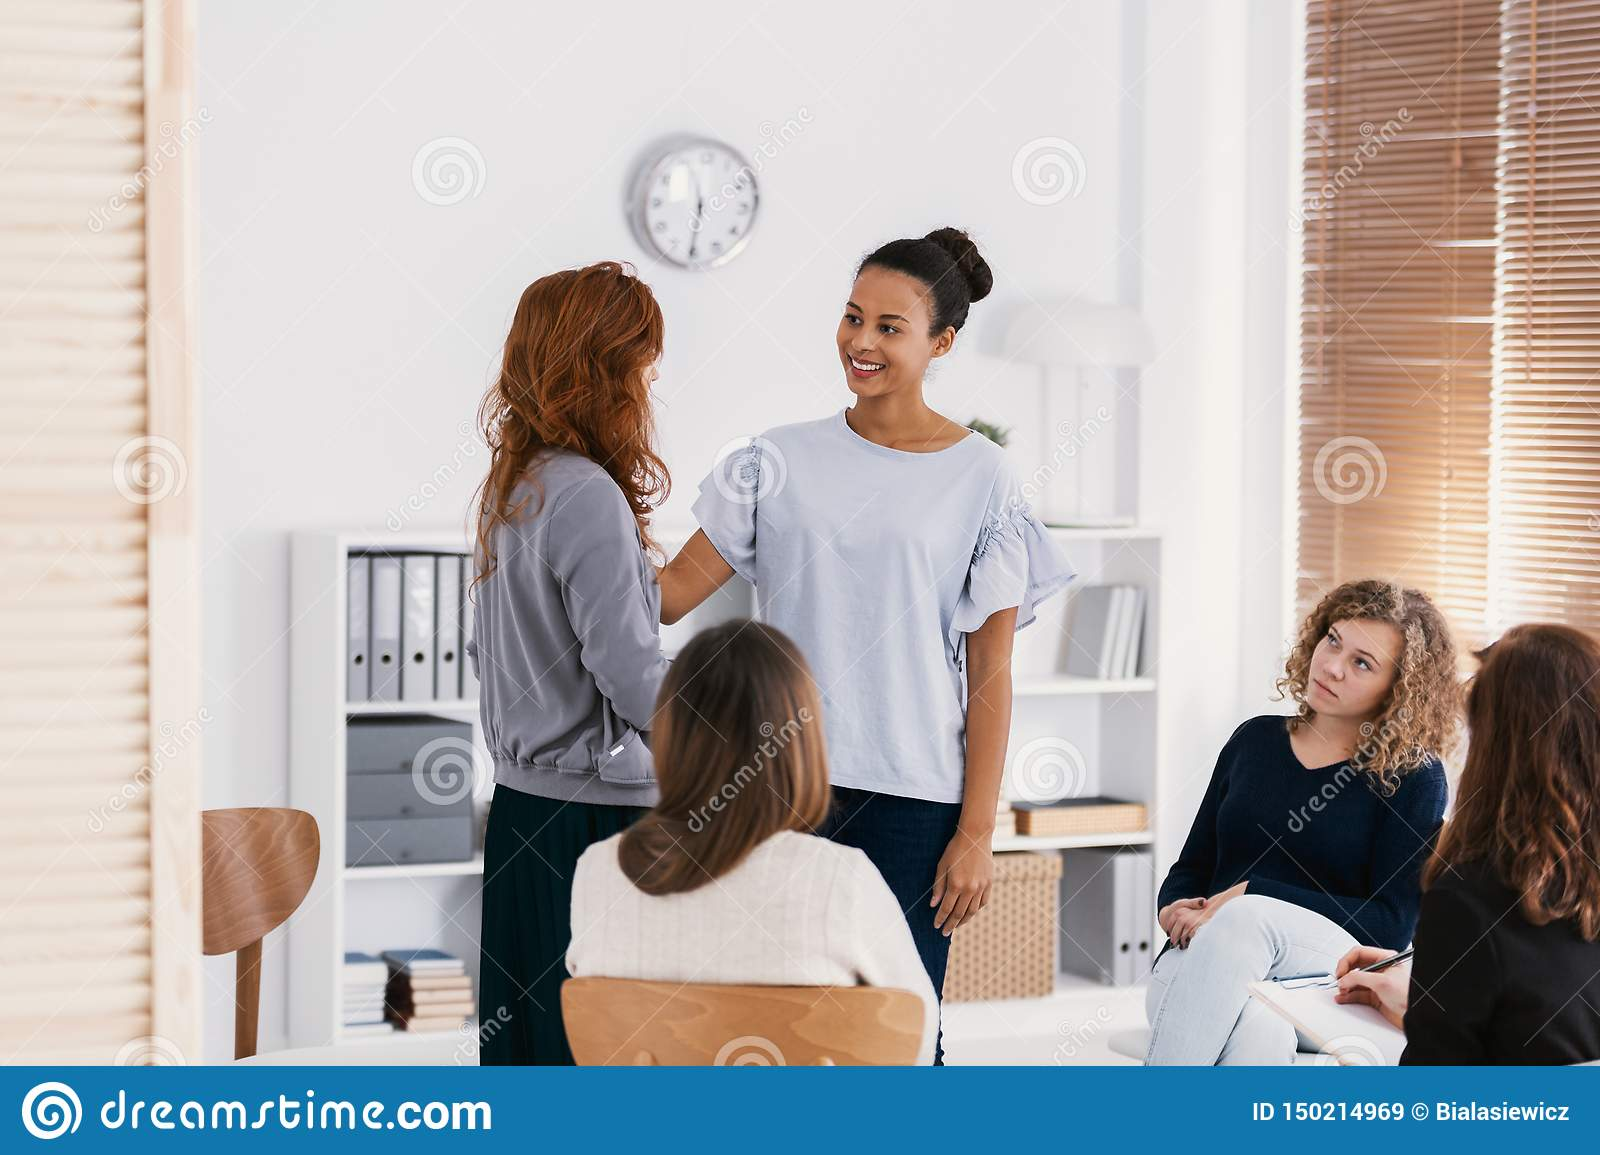 Redhead woman supporting sad friend during psychotherapy group meeting